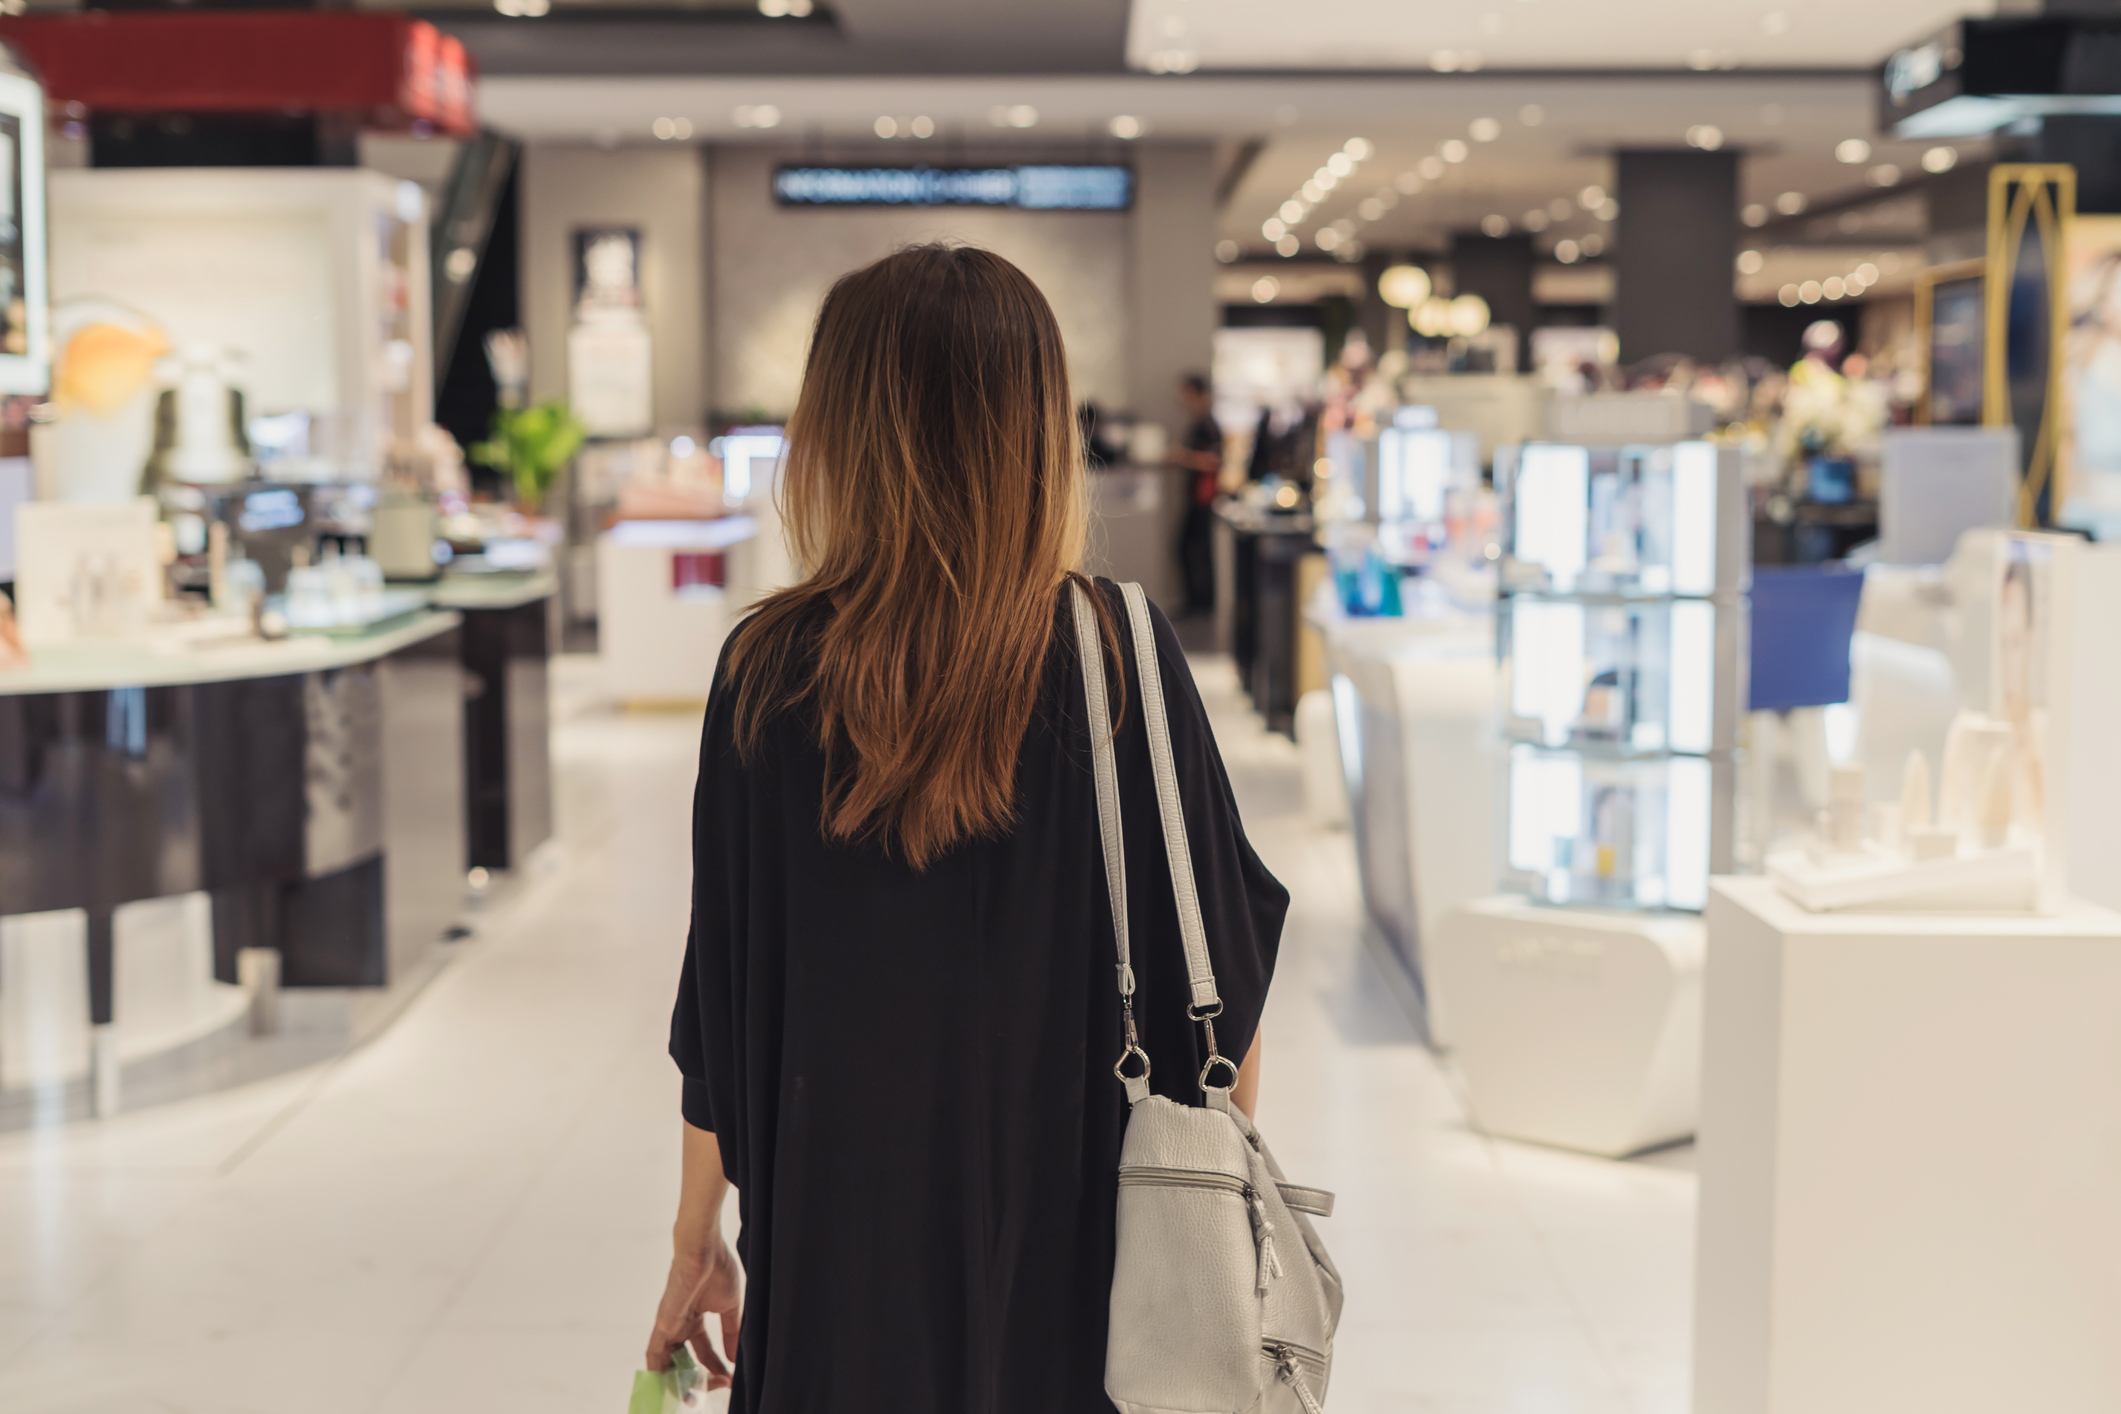 A woman shopping in a department store.